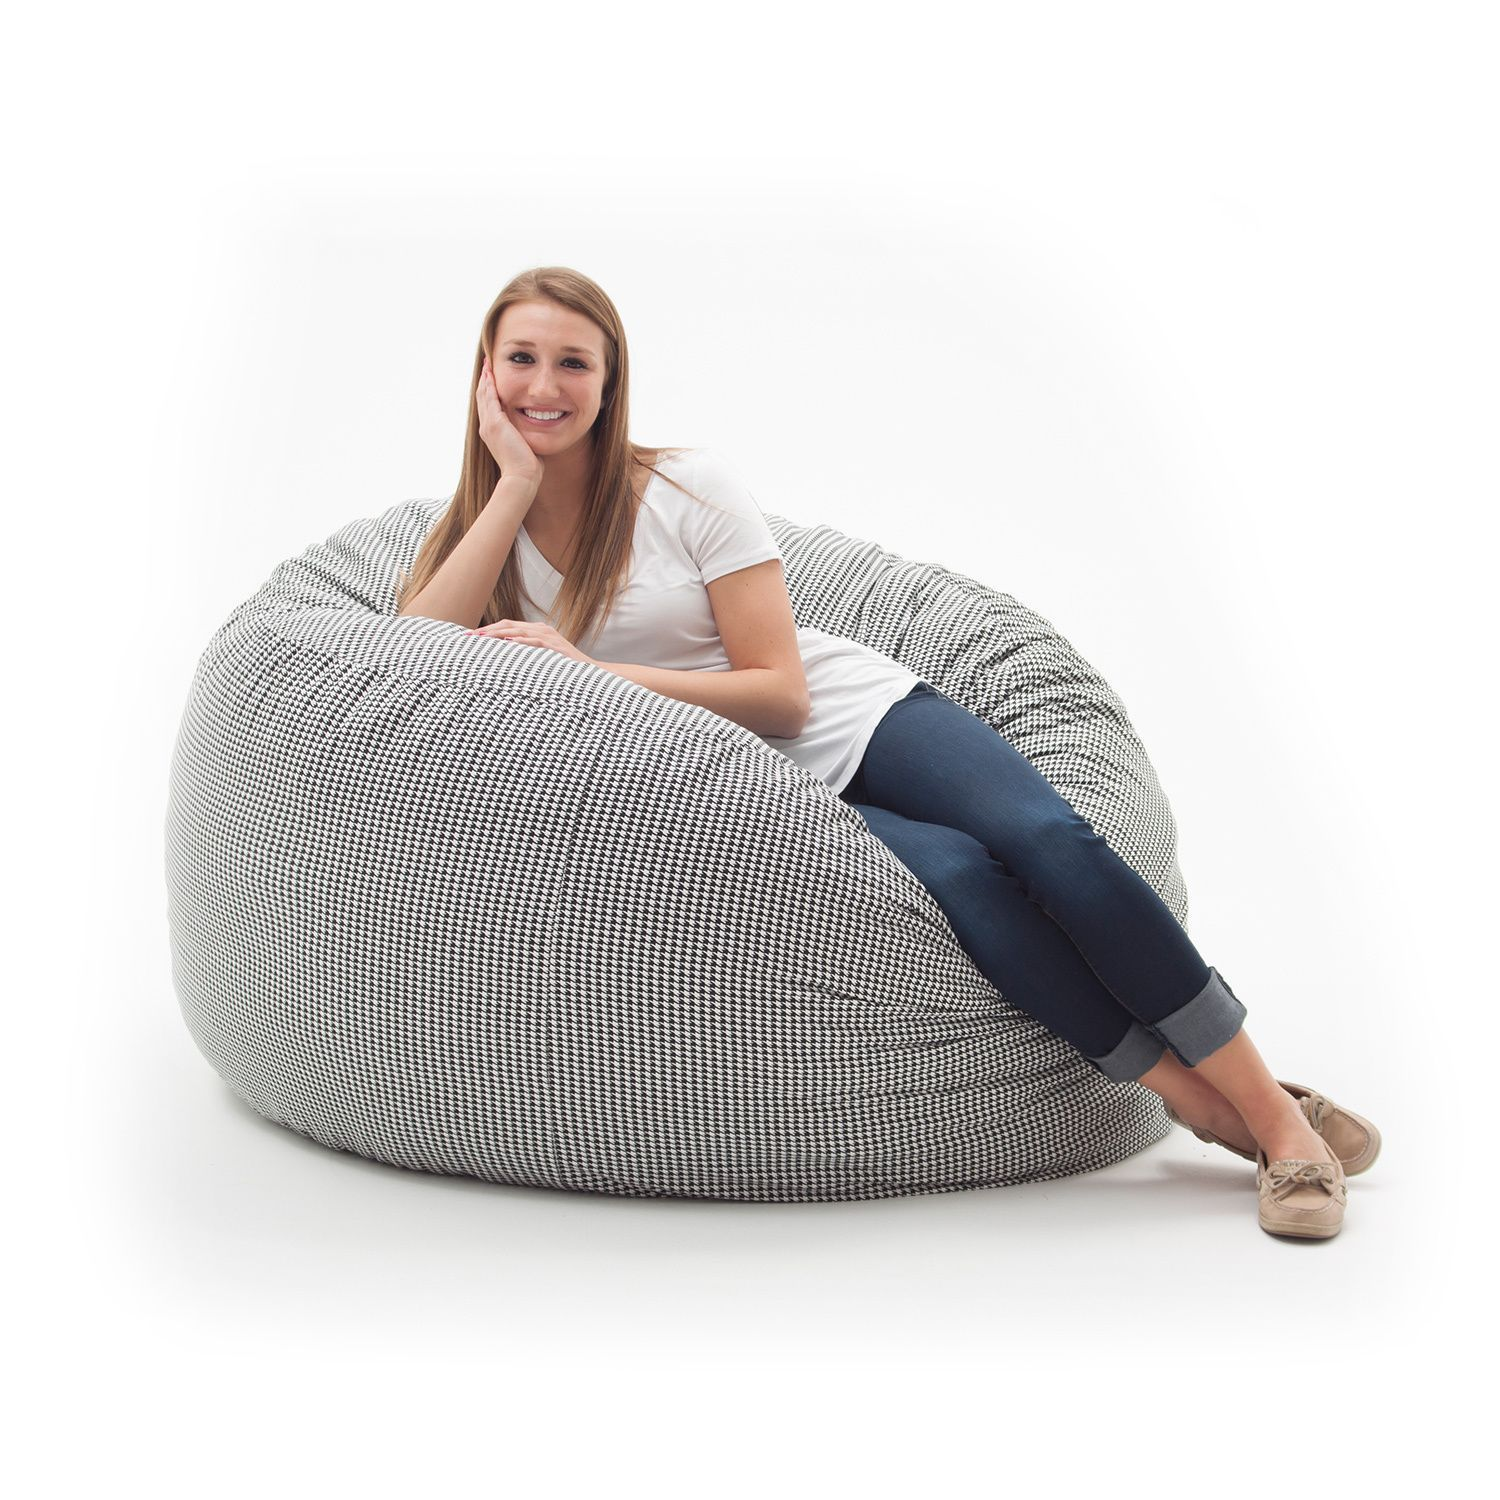 Spend Hours Relaxing In This Comfortable And Durable FufSack Memory Foam  Lounge Bean Bag Chair. The FufSack Bean Bag Chair Is Perfect To Use While  Watching ...